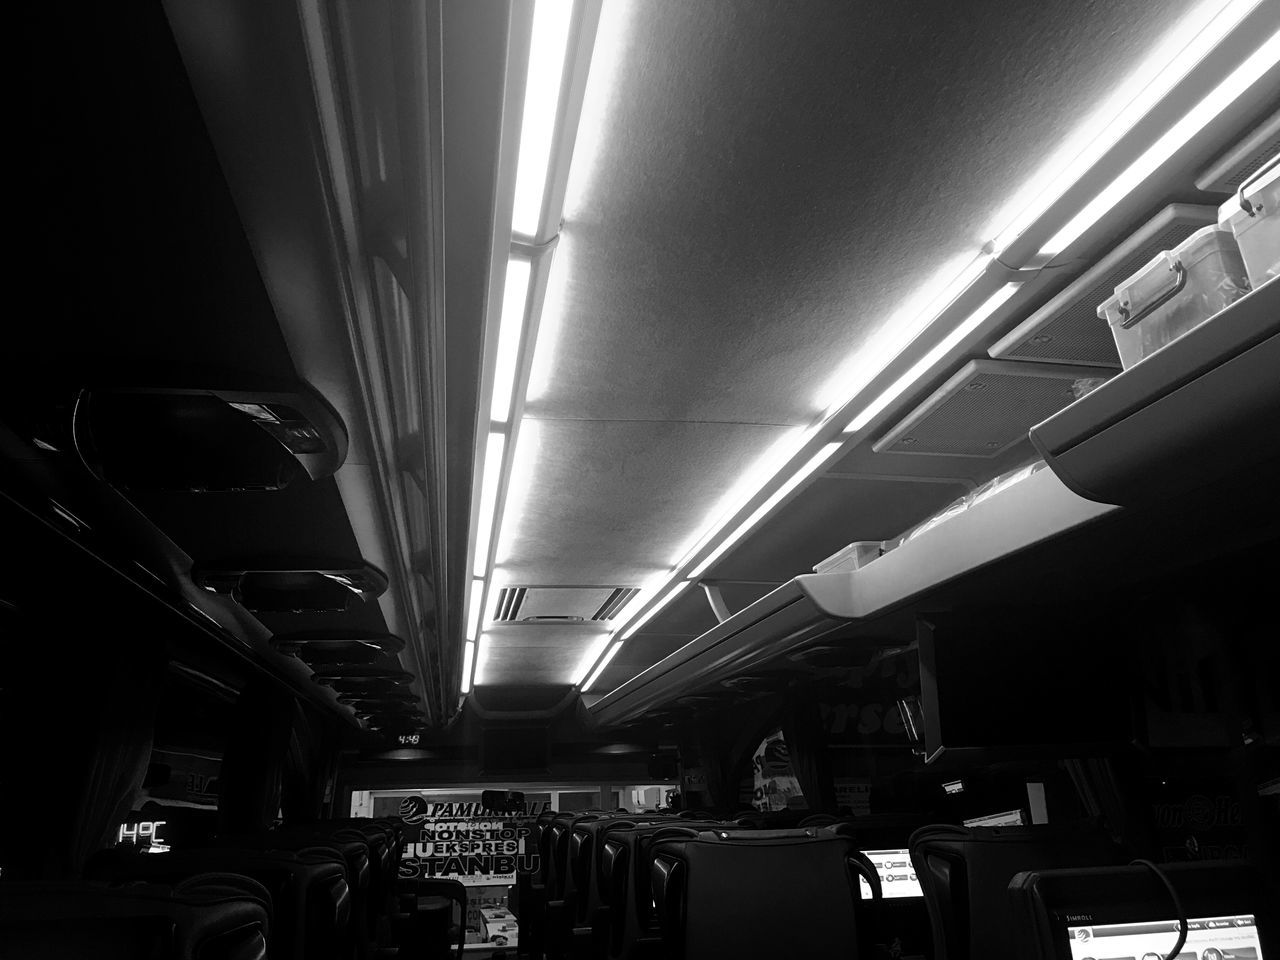 Black and white lights Vehicle Interior Transportation Mode Of Transport Illuminated Vehicle Seat Indoors  Public Transportation Real People Train Interior Day Bus Otobus Otobüsyolculuğu Object Perspective Perspectives EyeEm Life Lifestyles Vacation Vacations Seyahat Yolculuk Turkey Türkiye